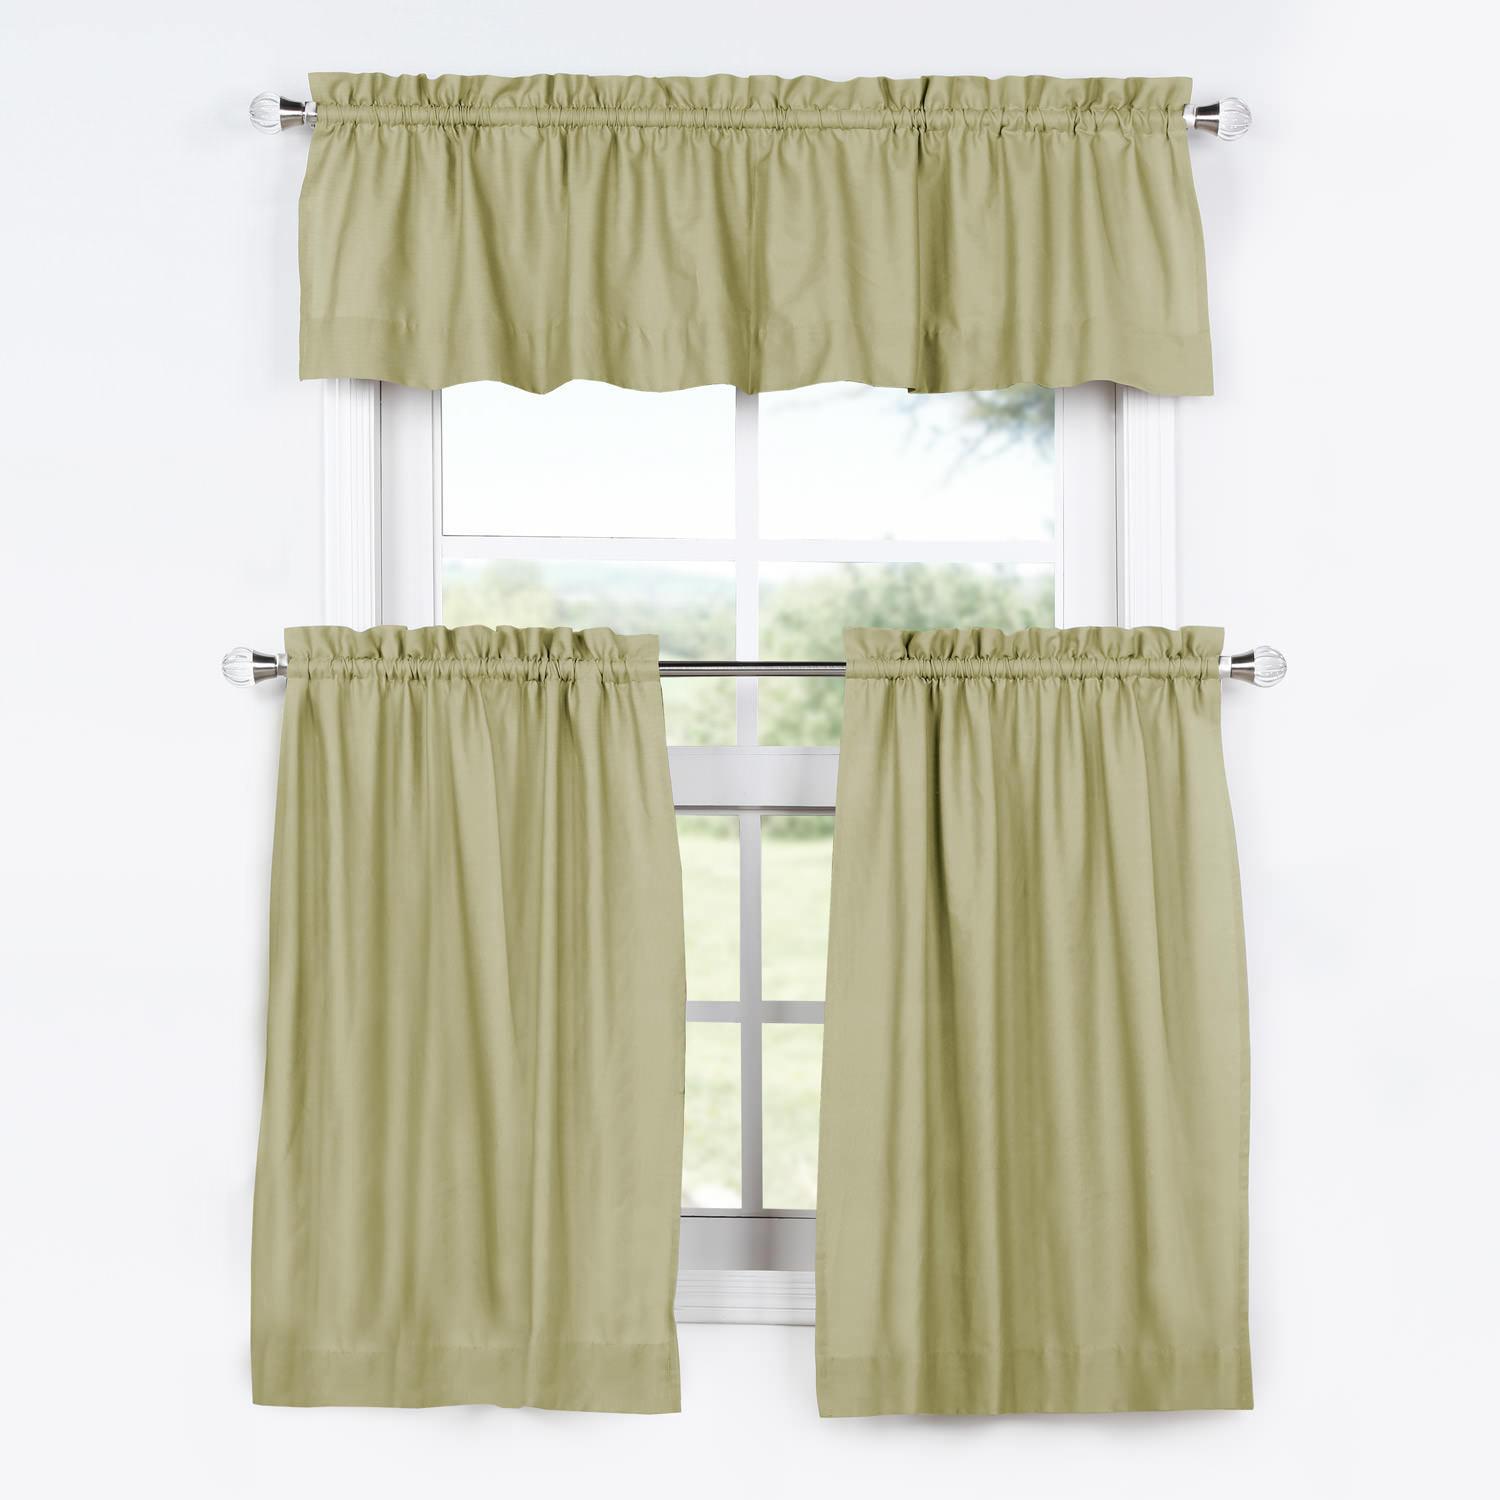 Mountain Moss Solid Cotton Kitchen Tier Curtain & Valance Set (3pc)